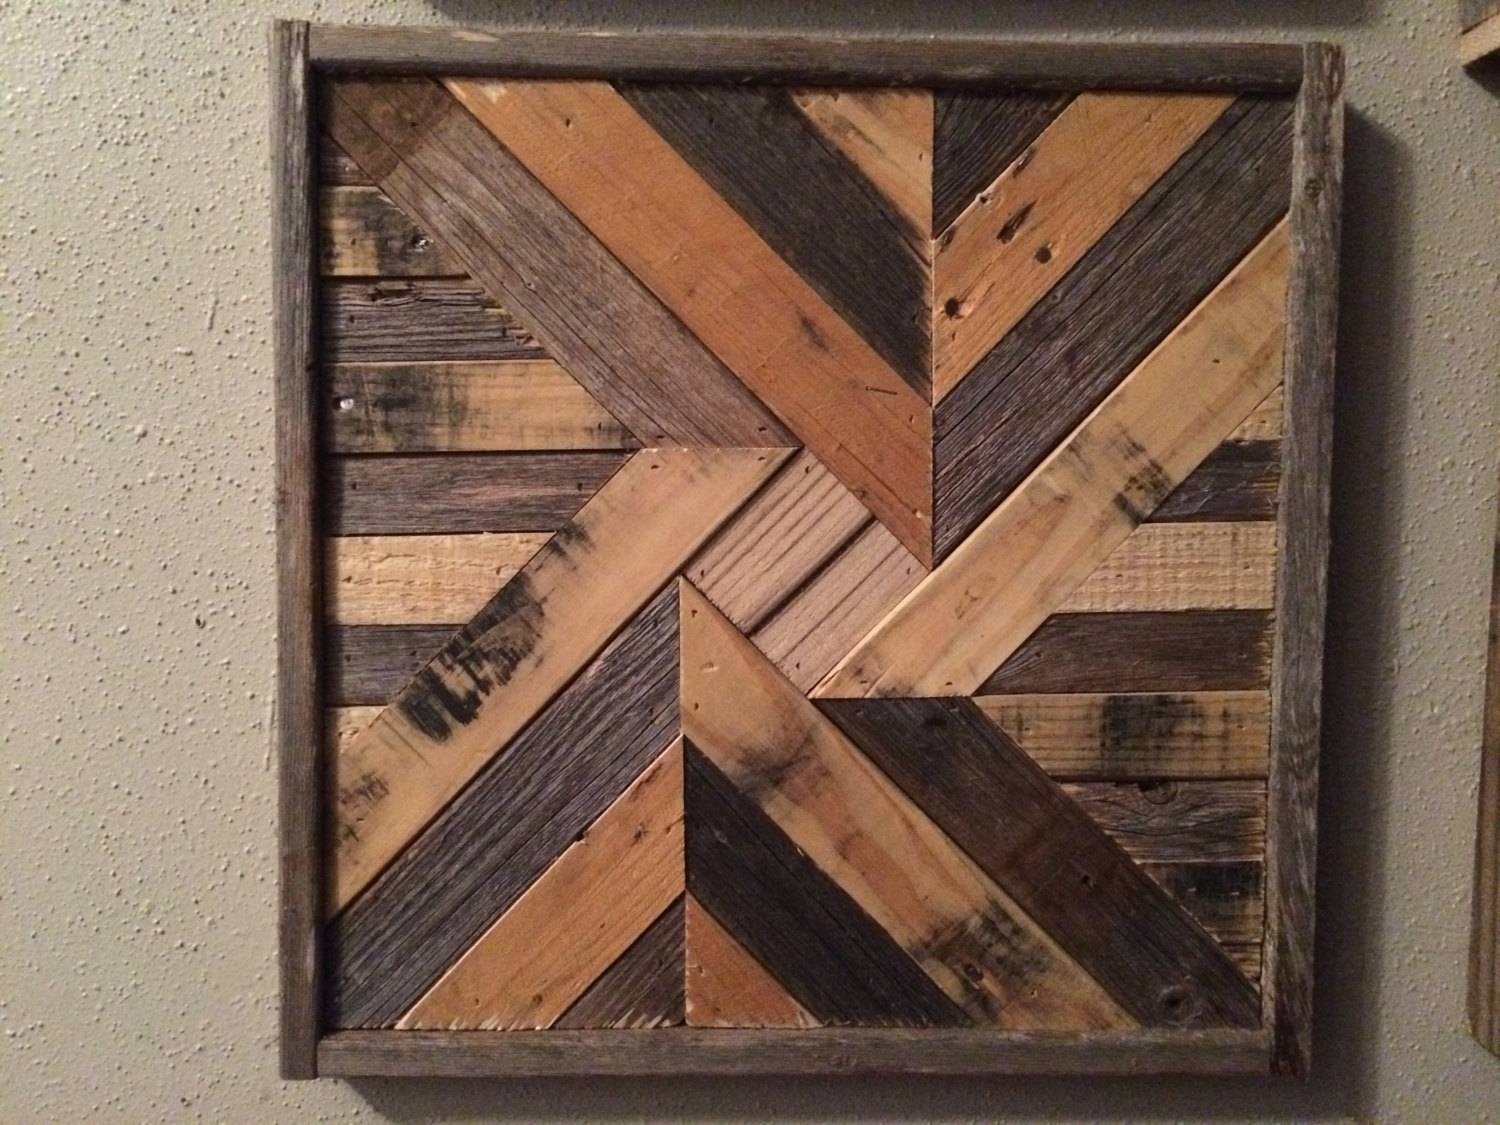 Barnwood Quilt Natural Reclaimed Wood Wall Art Pertaining To Latest Natural Wood Wall Art (View 5 of 20)